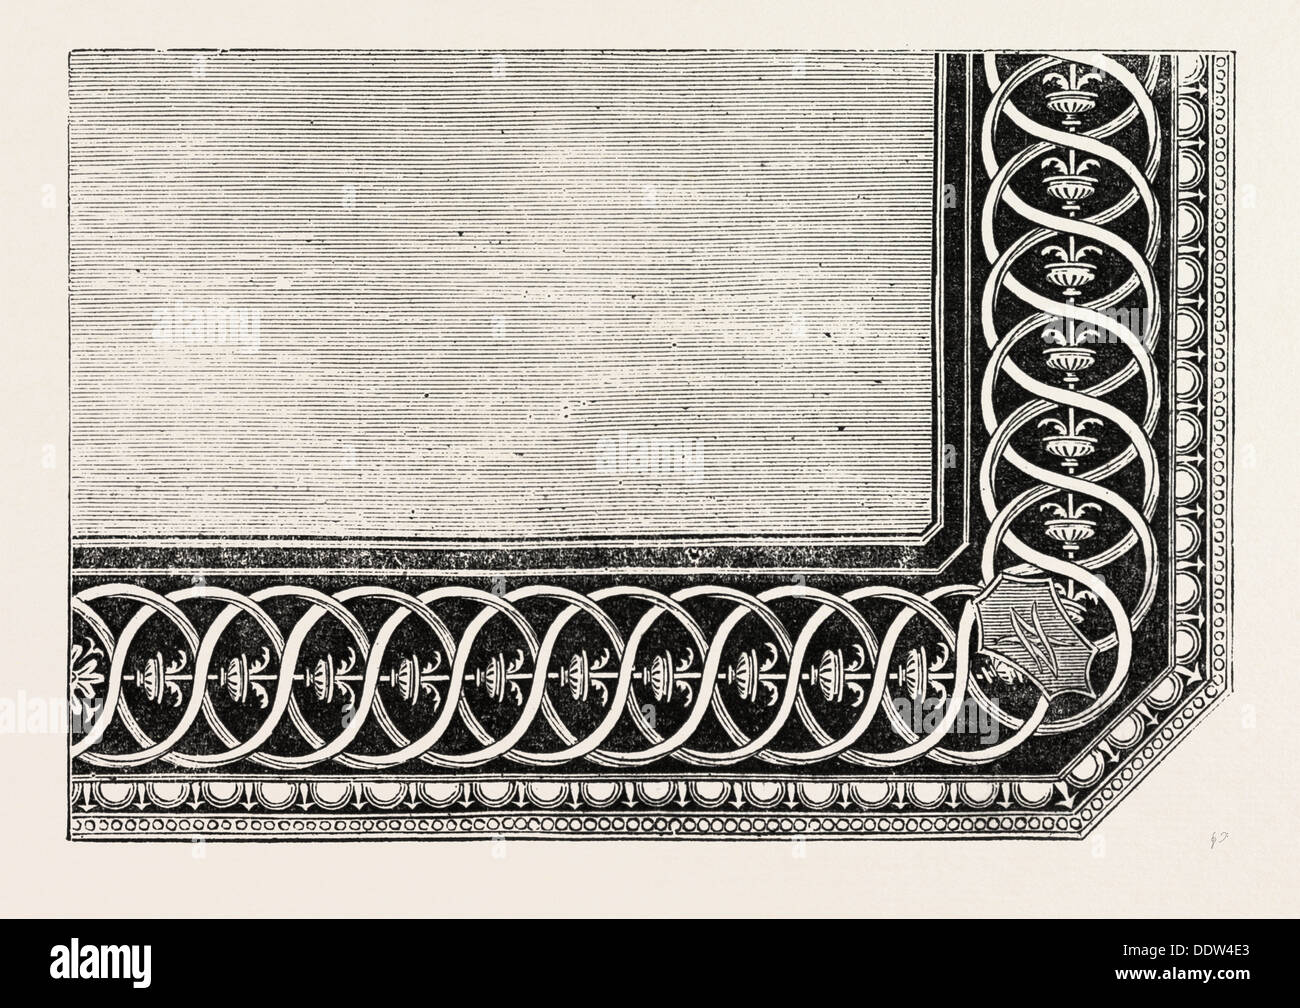 IN-LAID TABLE TOP, DESIGNED BY GRUNER, BY WOODRUFFE, OF BAKEWELL, DERBYSHIRE - Stock Image